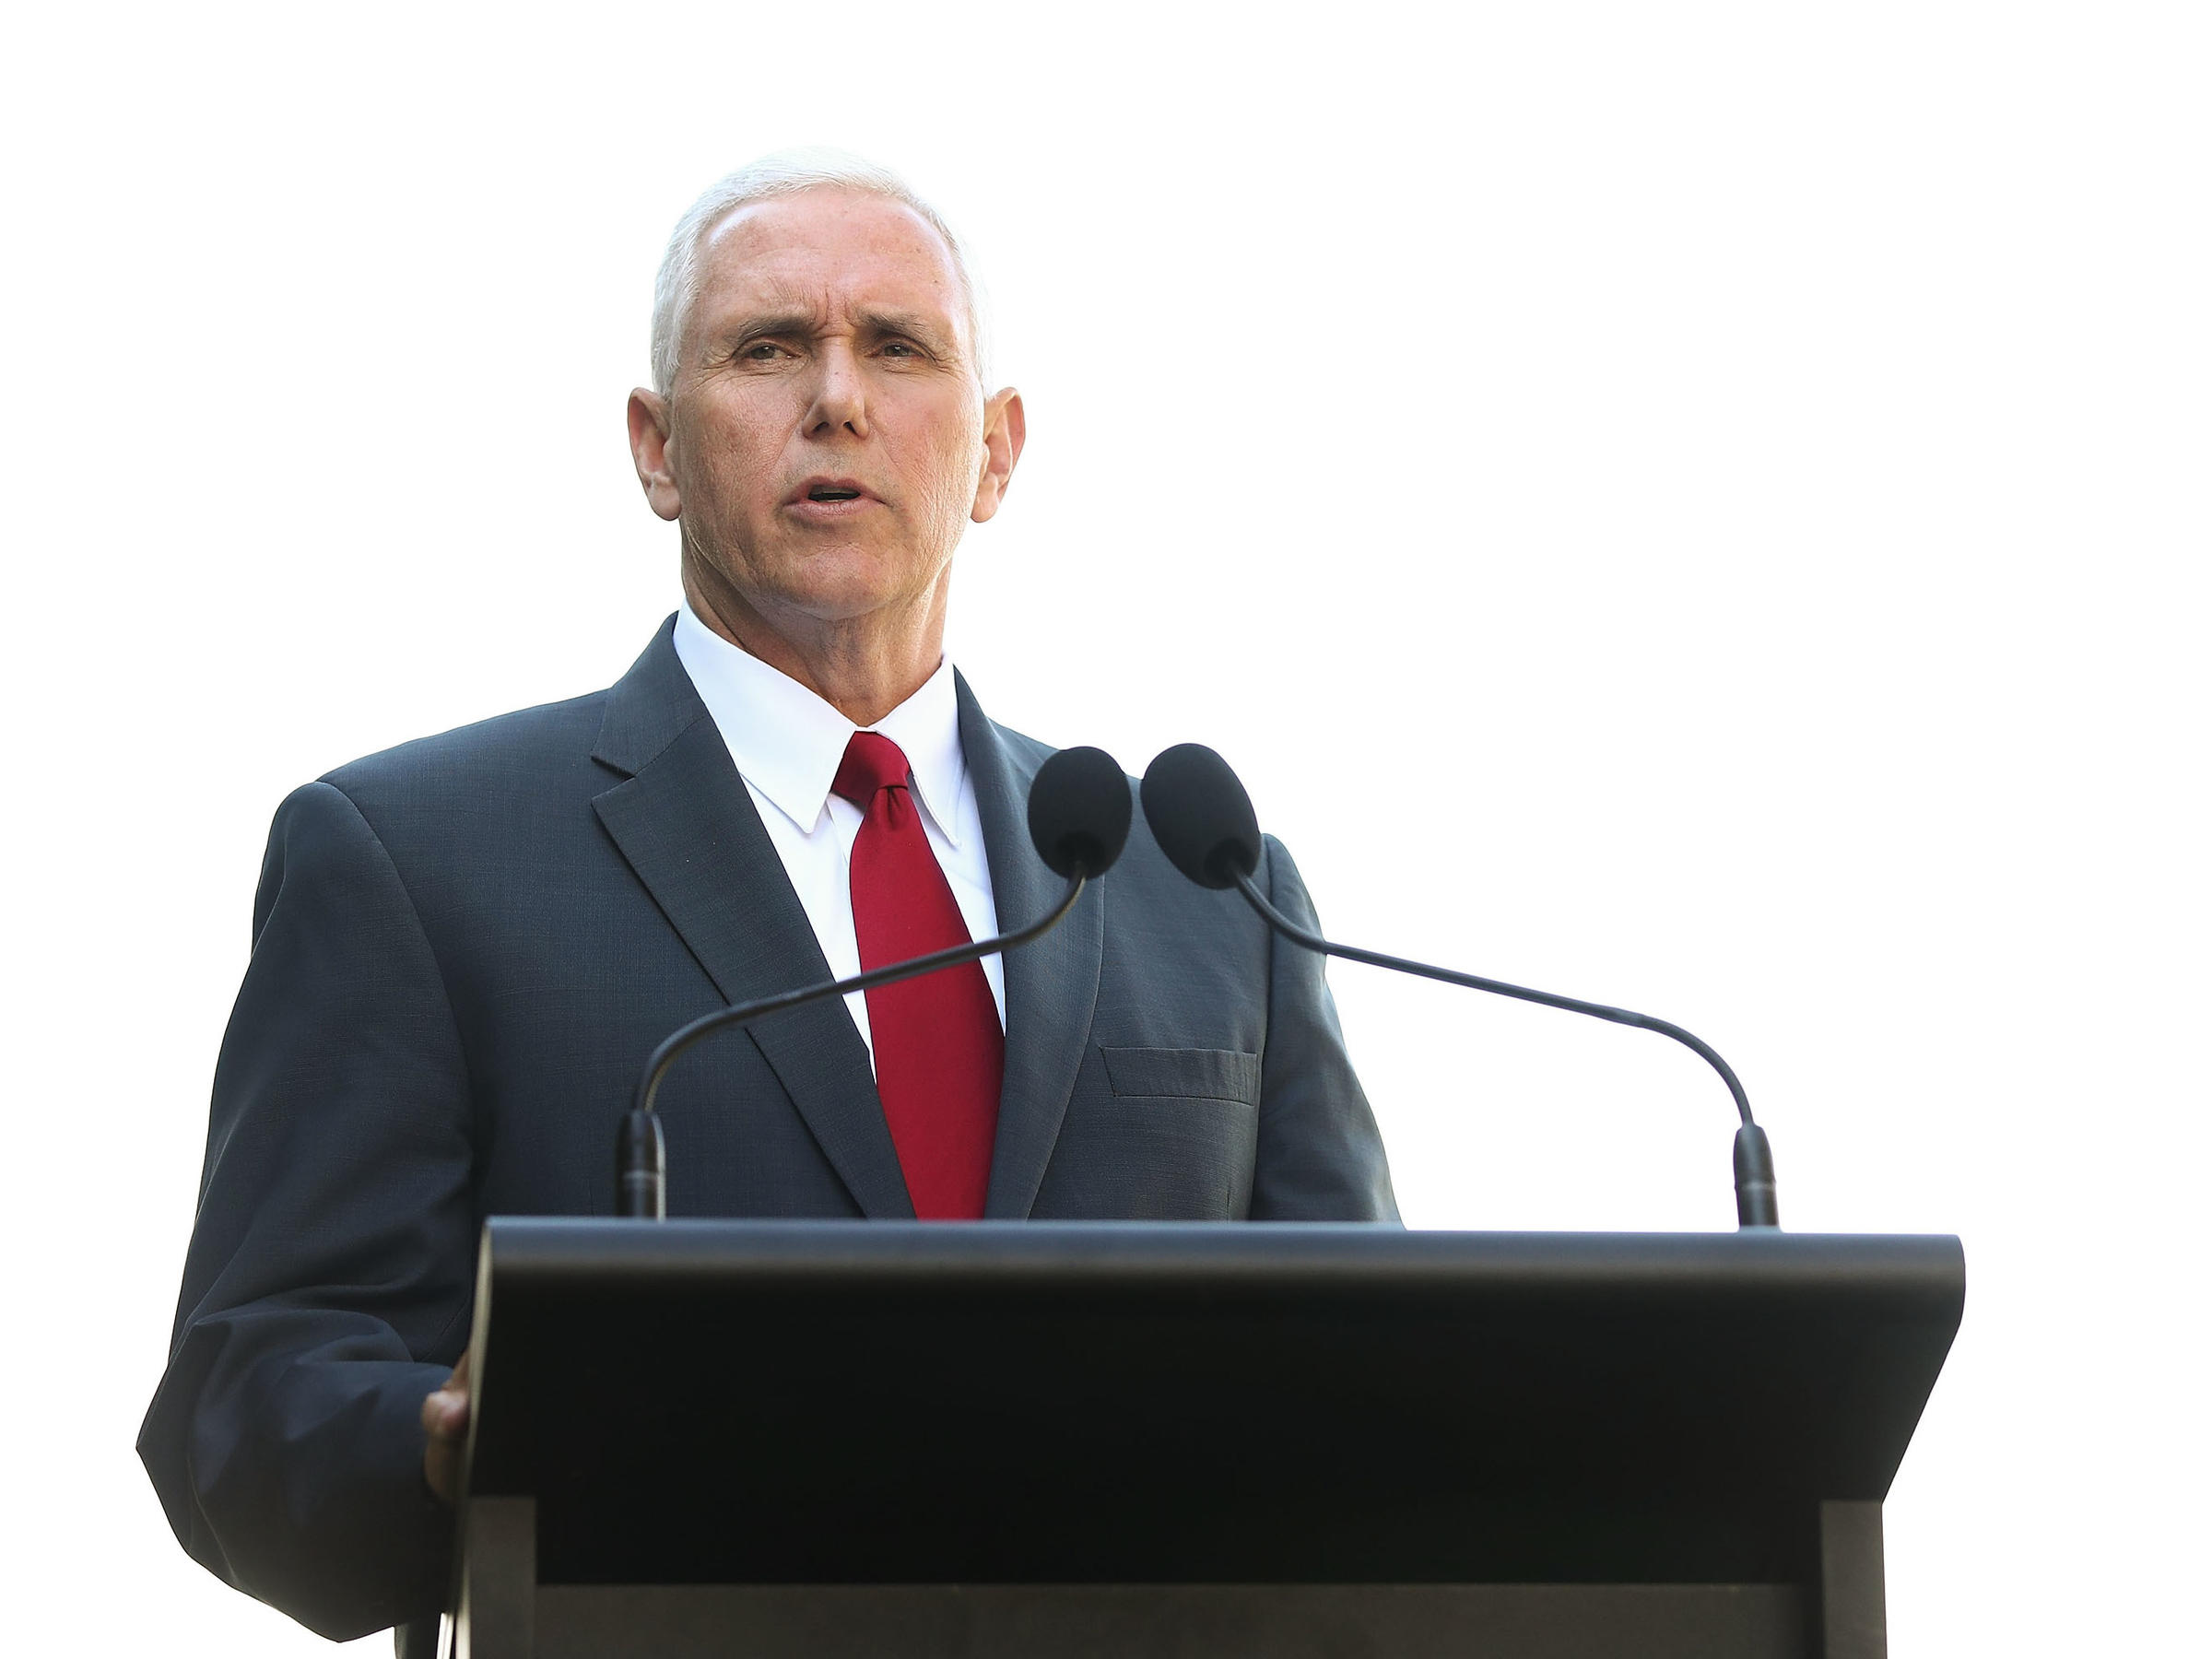 Mike Pence reportedly hires private attorney to help with Russian Federation probe